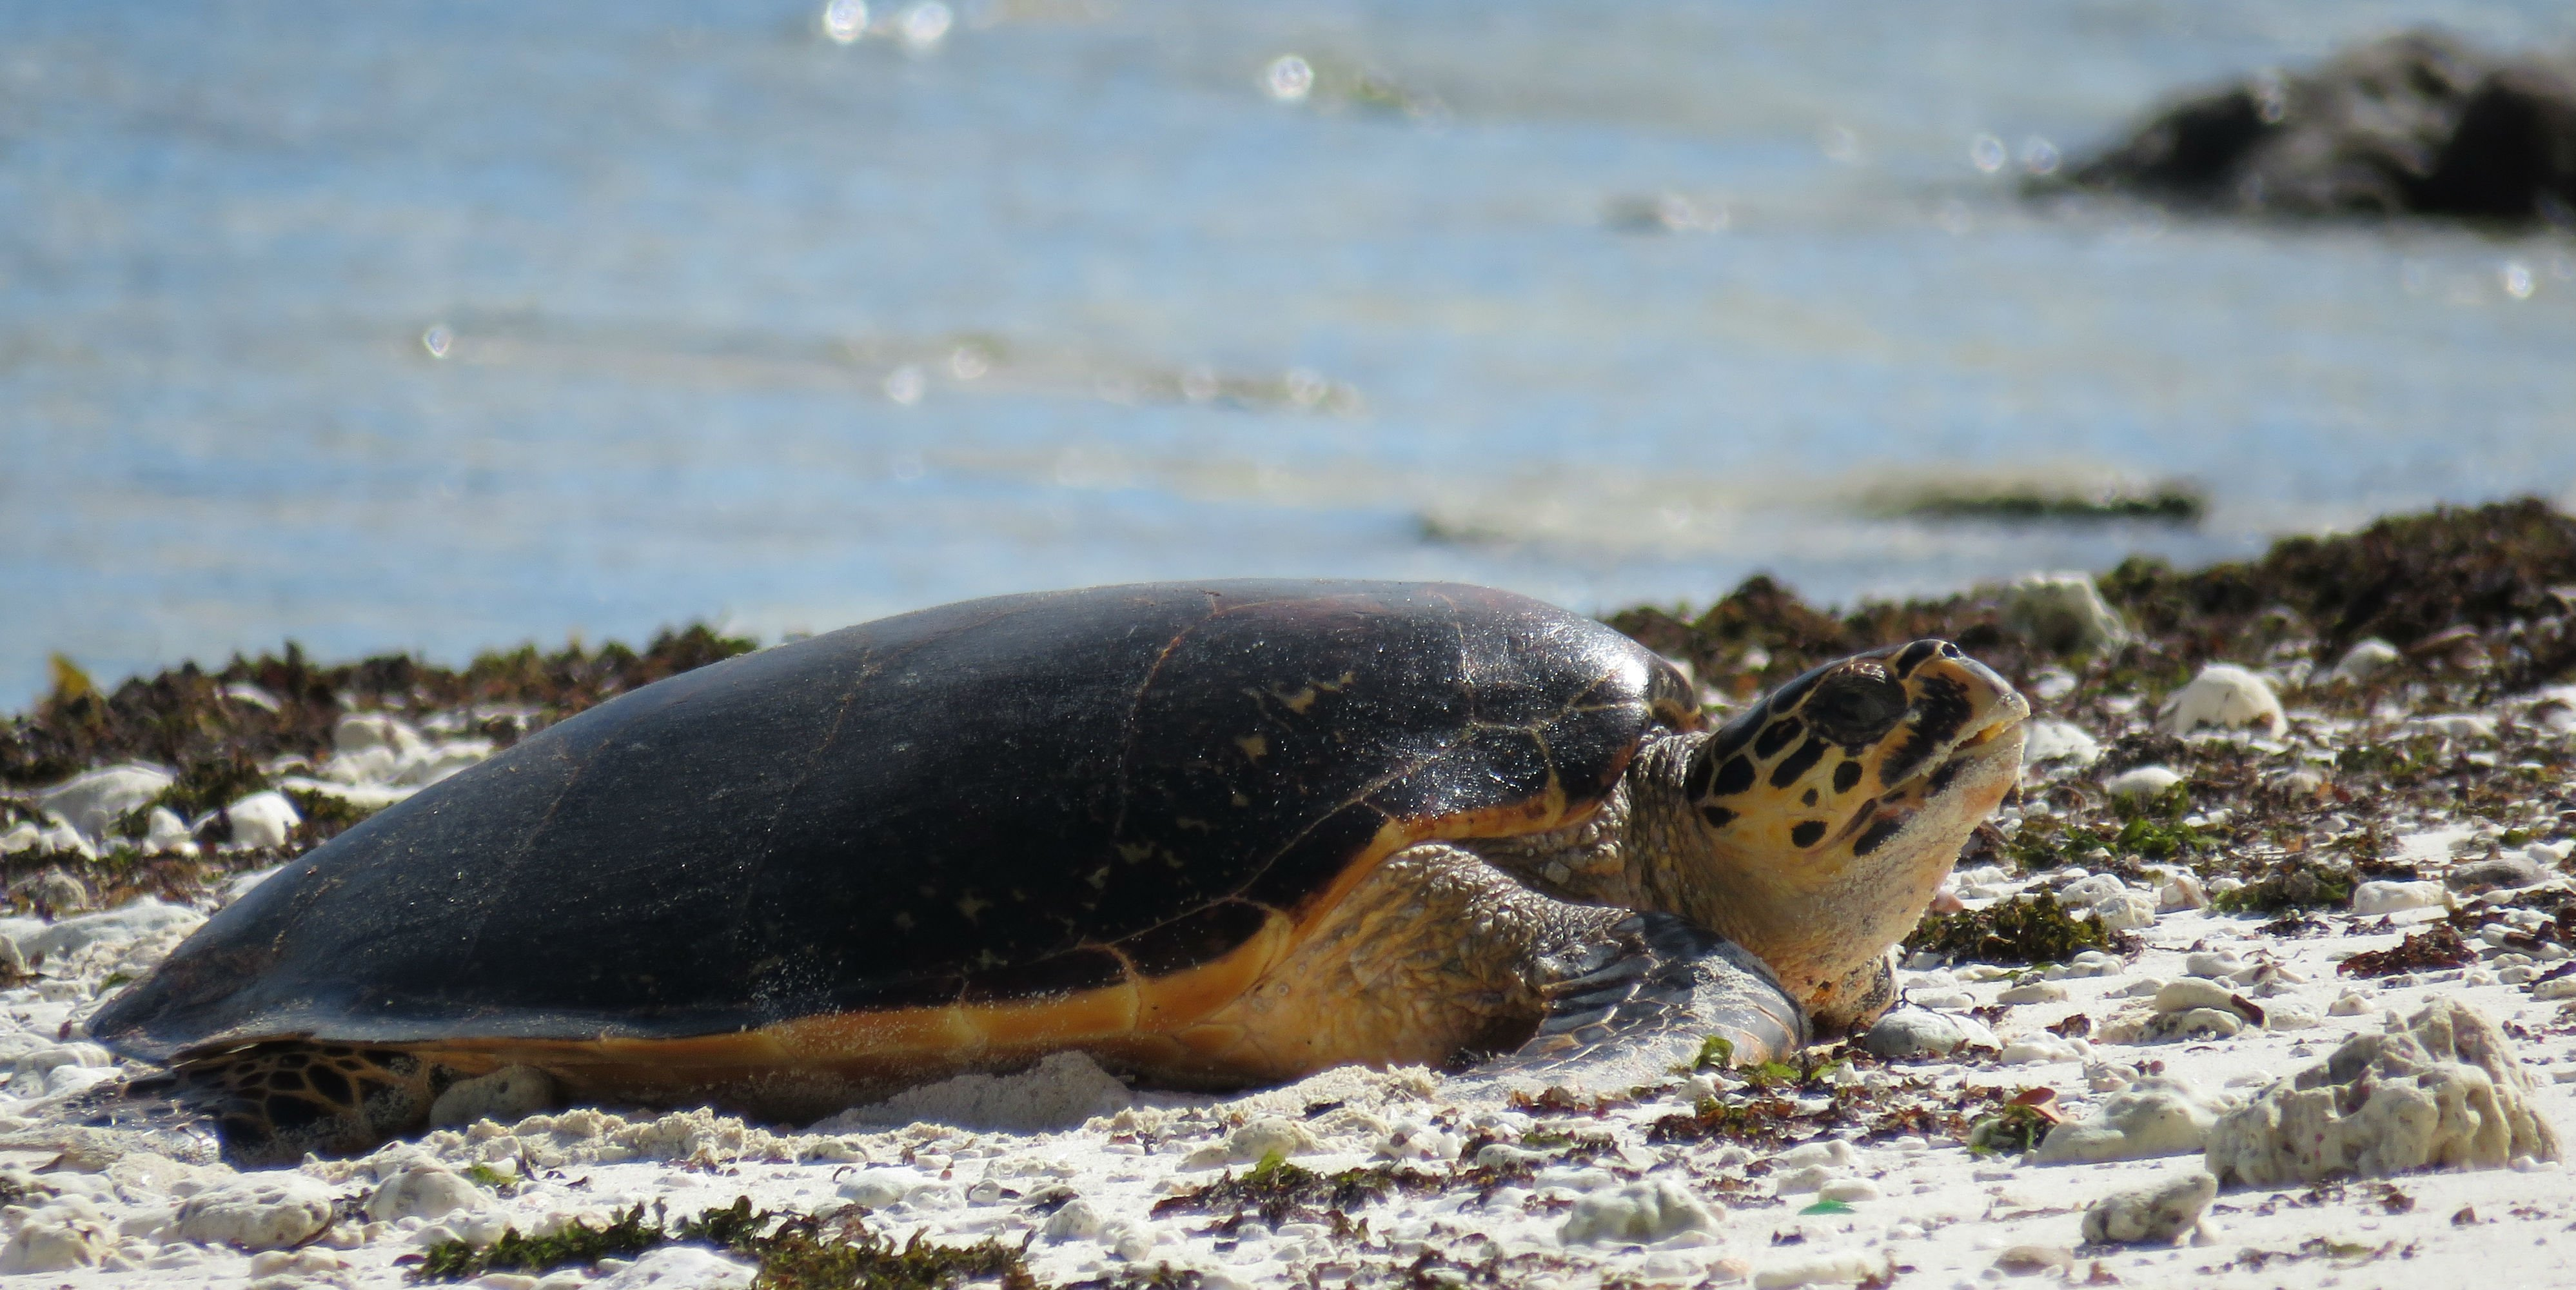 An endangered sea turtle prepares to nest on a beach.